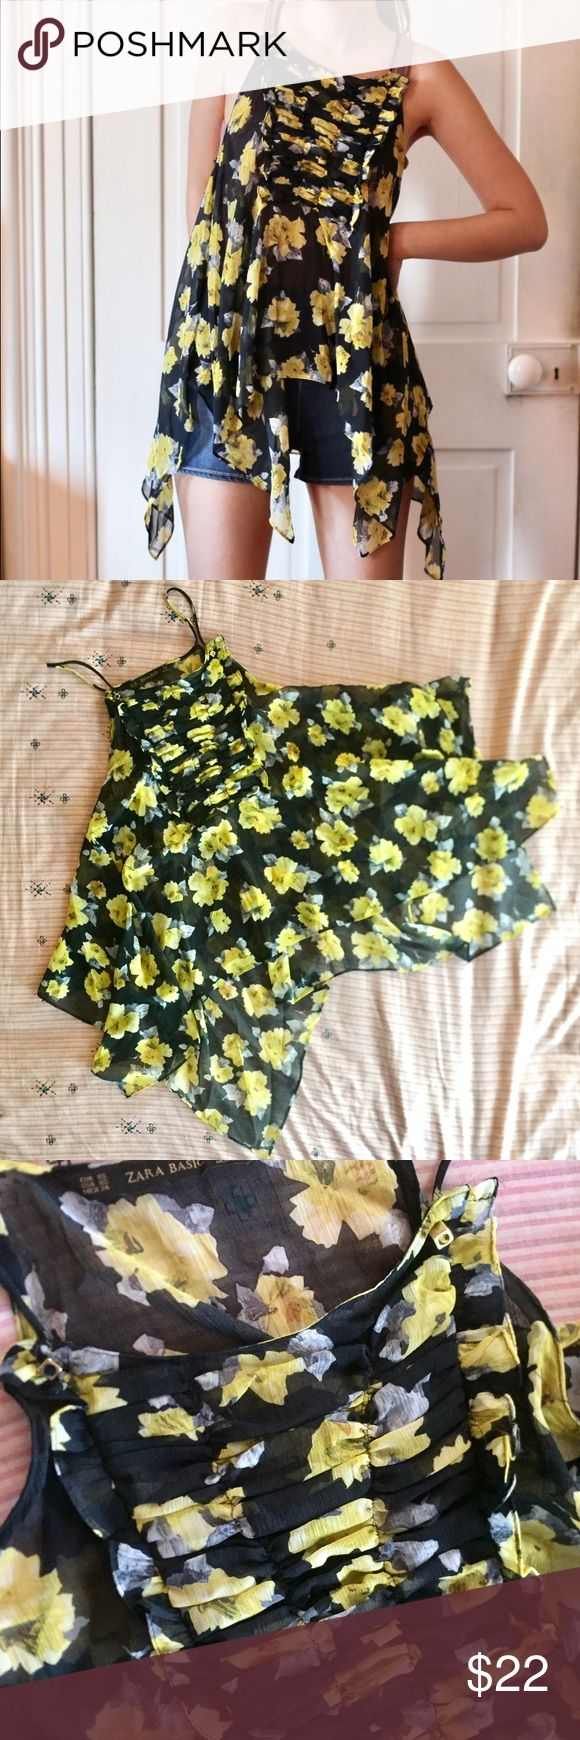 "Zara Asymmetrical Hem Floral Strappy Top A top in a somewhat halter style with spaghetti straps and a ruffled bib detail on the front where the straps are held in place with gold cube beads. Lovely flowy Asymmetrical Hem and material of a dark color with gorgeous yellow flowers. Length not counting the straps varies from about 17"" to 29"" but it's hard to measure accurately because of the uneven bottom. 100% poly and new condition-- never worn! I think it fits more like an S Zara Tops"